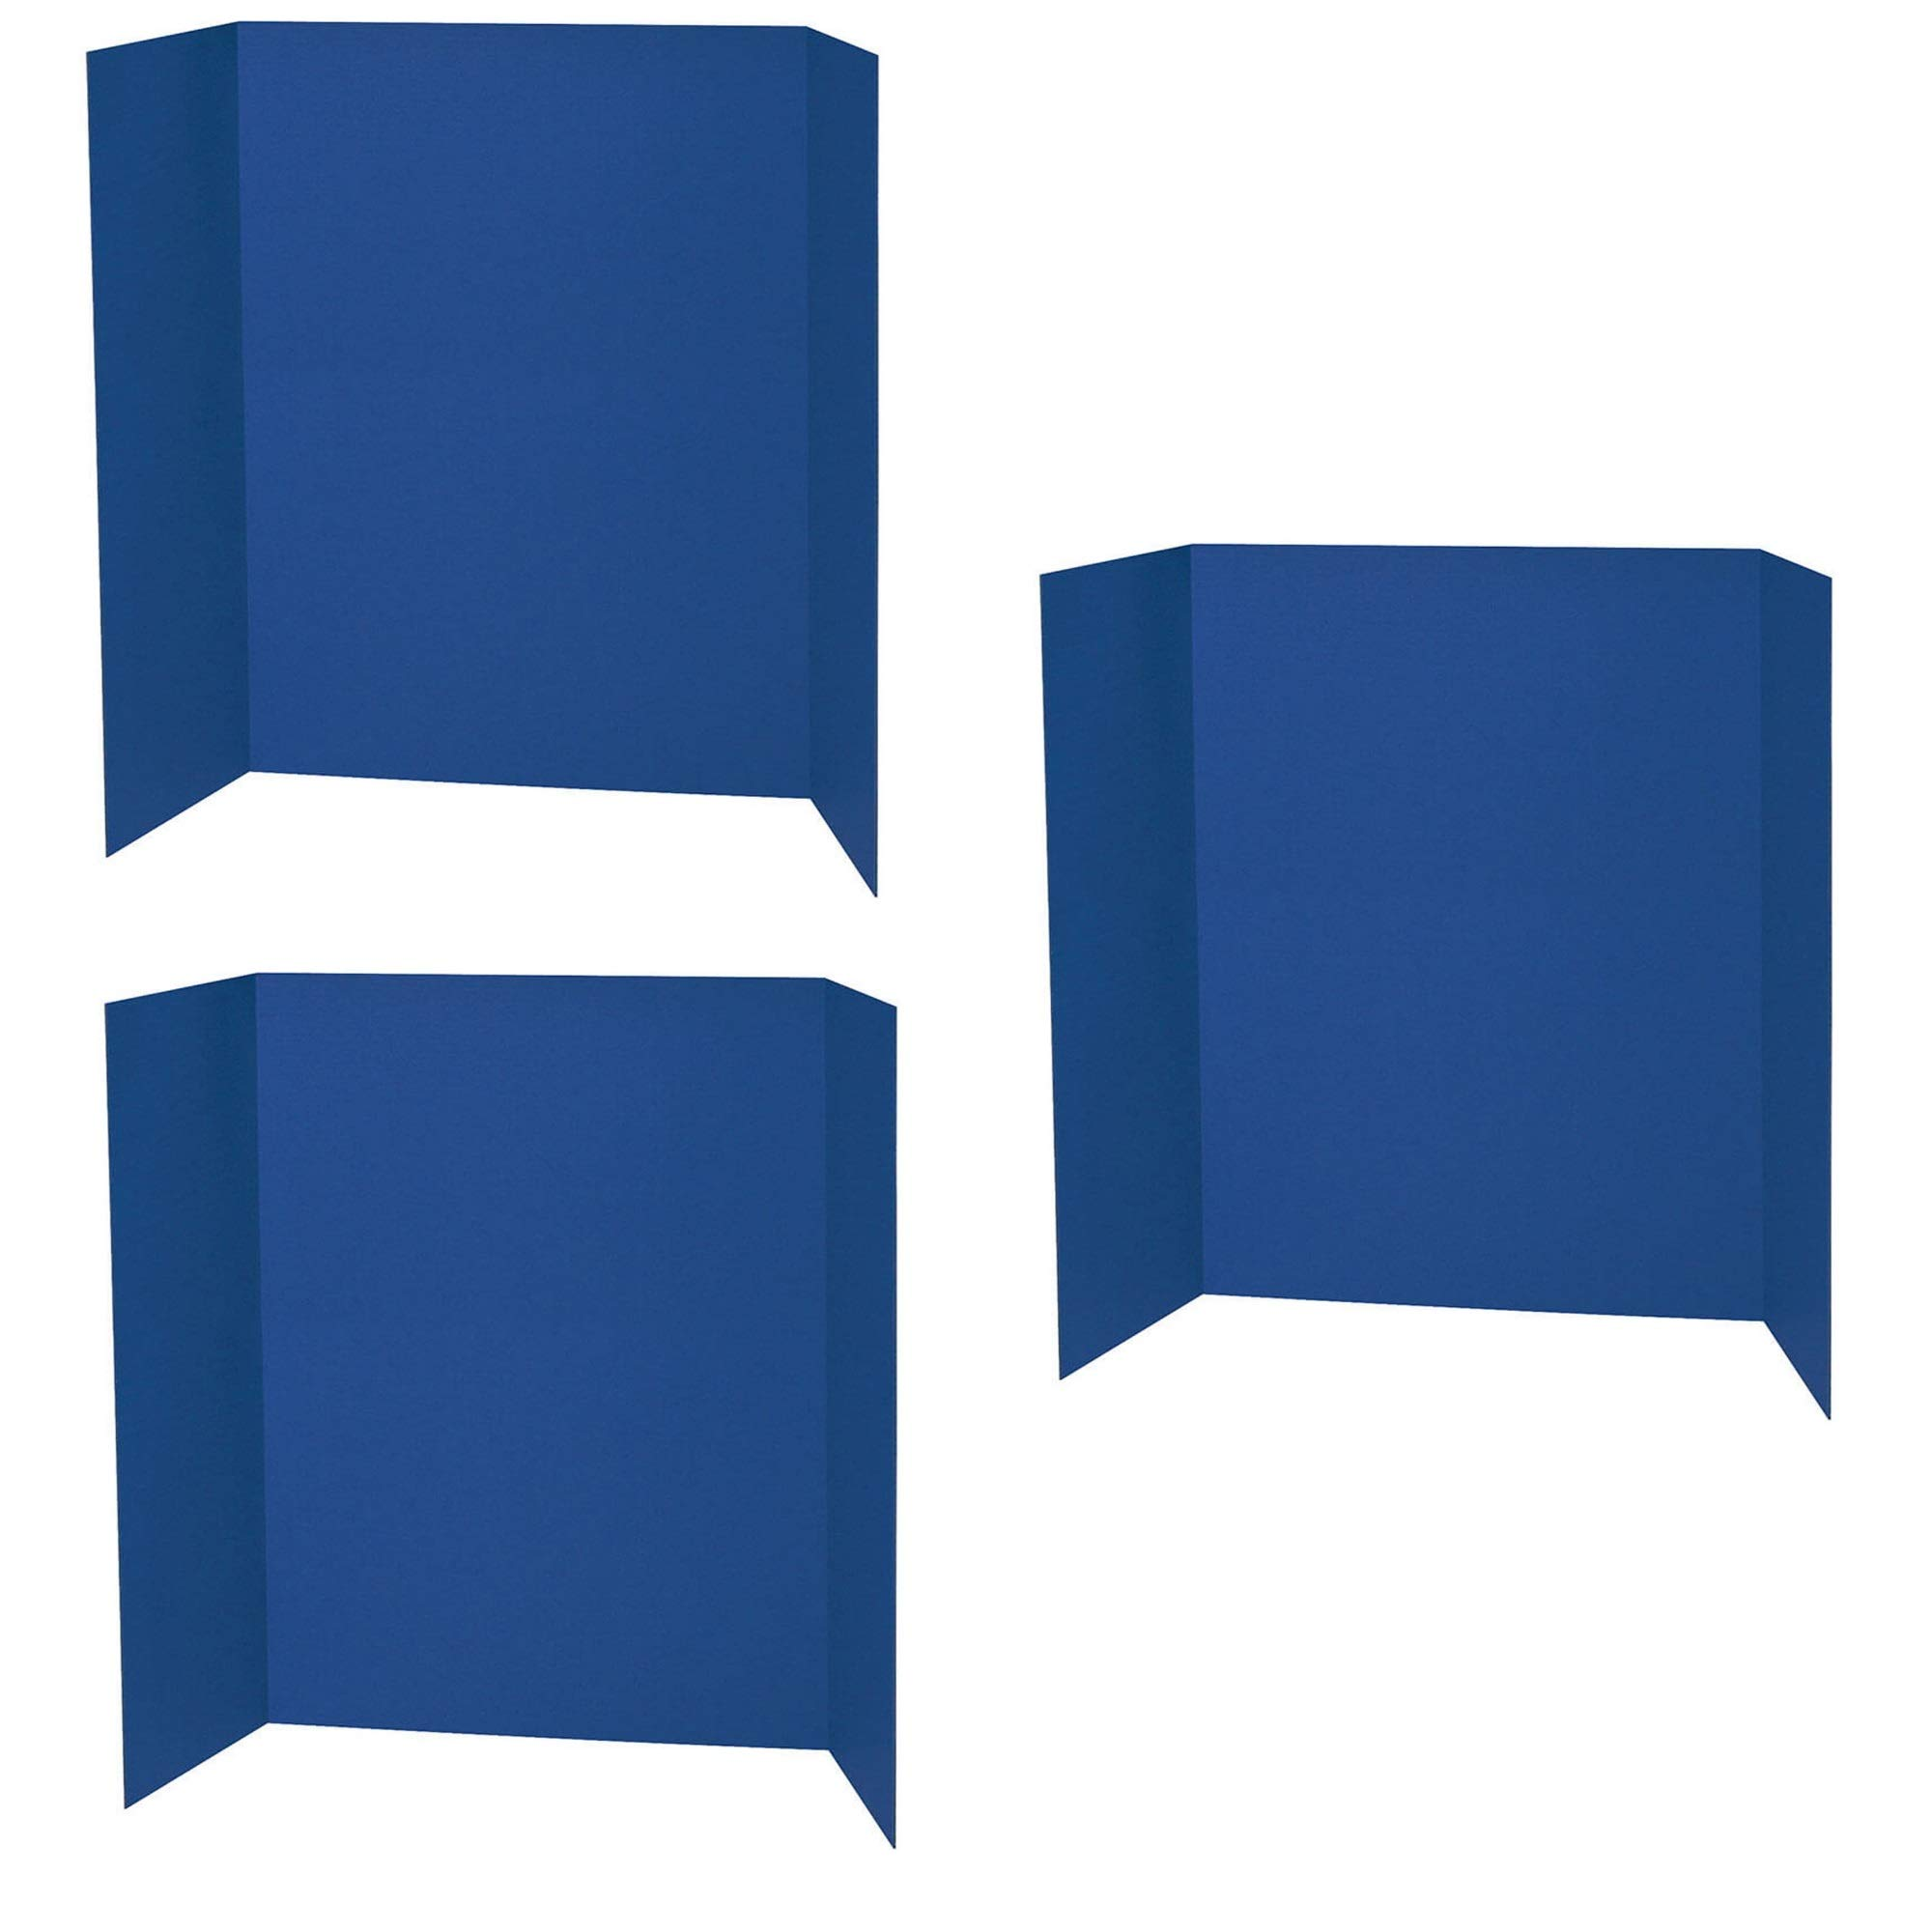 Spotlight 1 Ply Trifold Display Board, 48'' Width x 36'' Height, Blue, 3 Pack by Spotlight